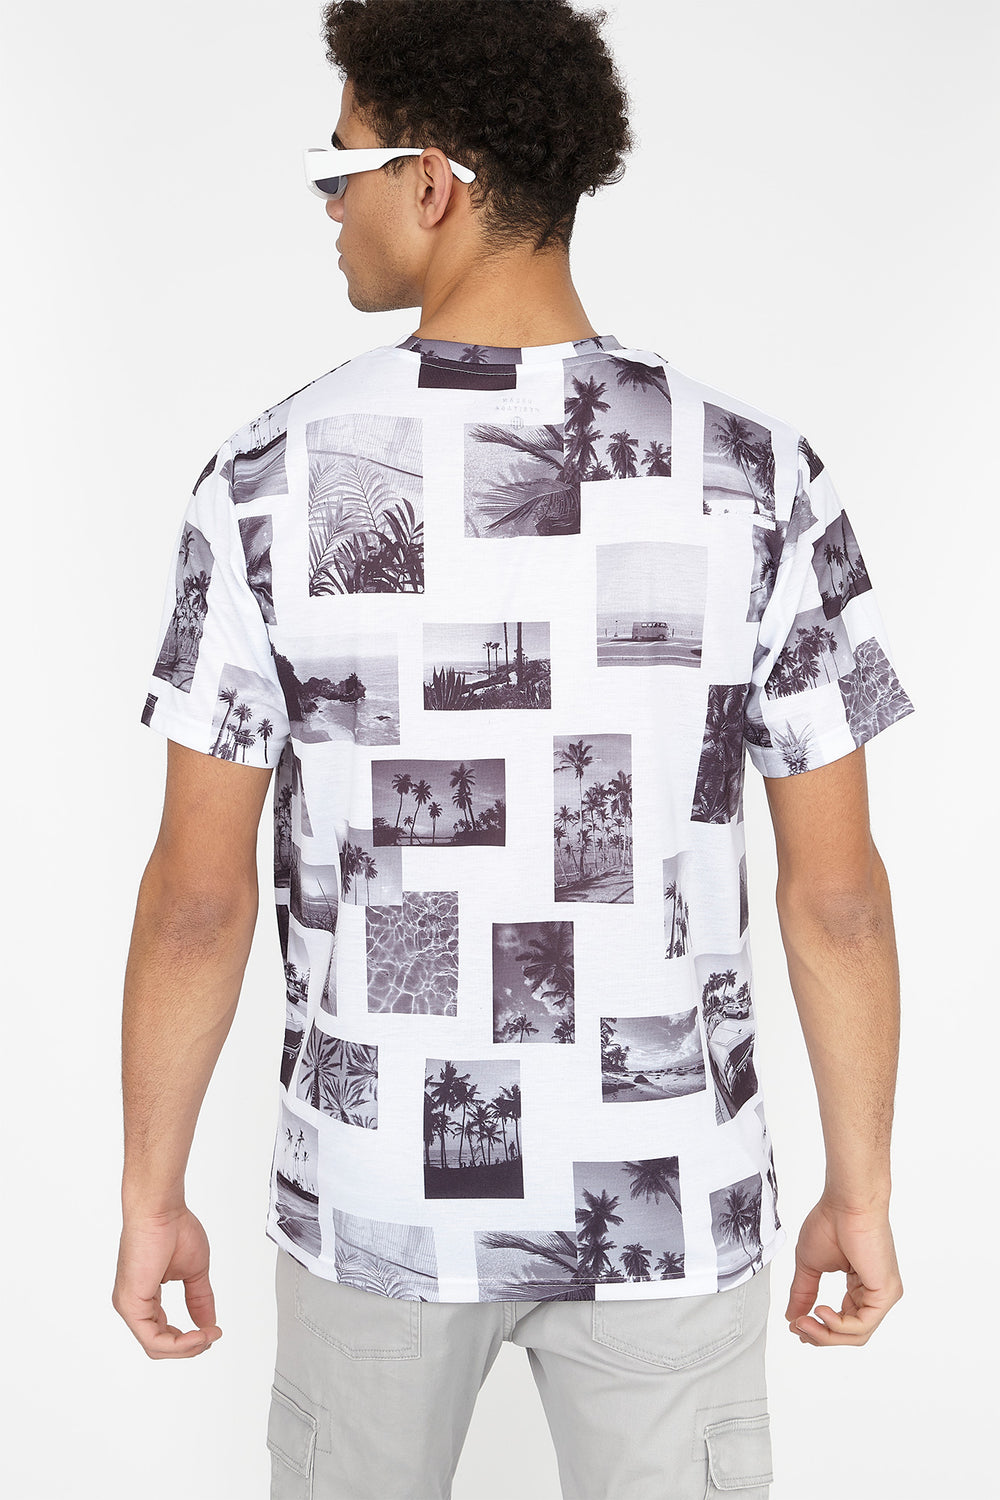 California Photo Collage Graphic T-Shirt White